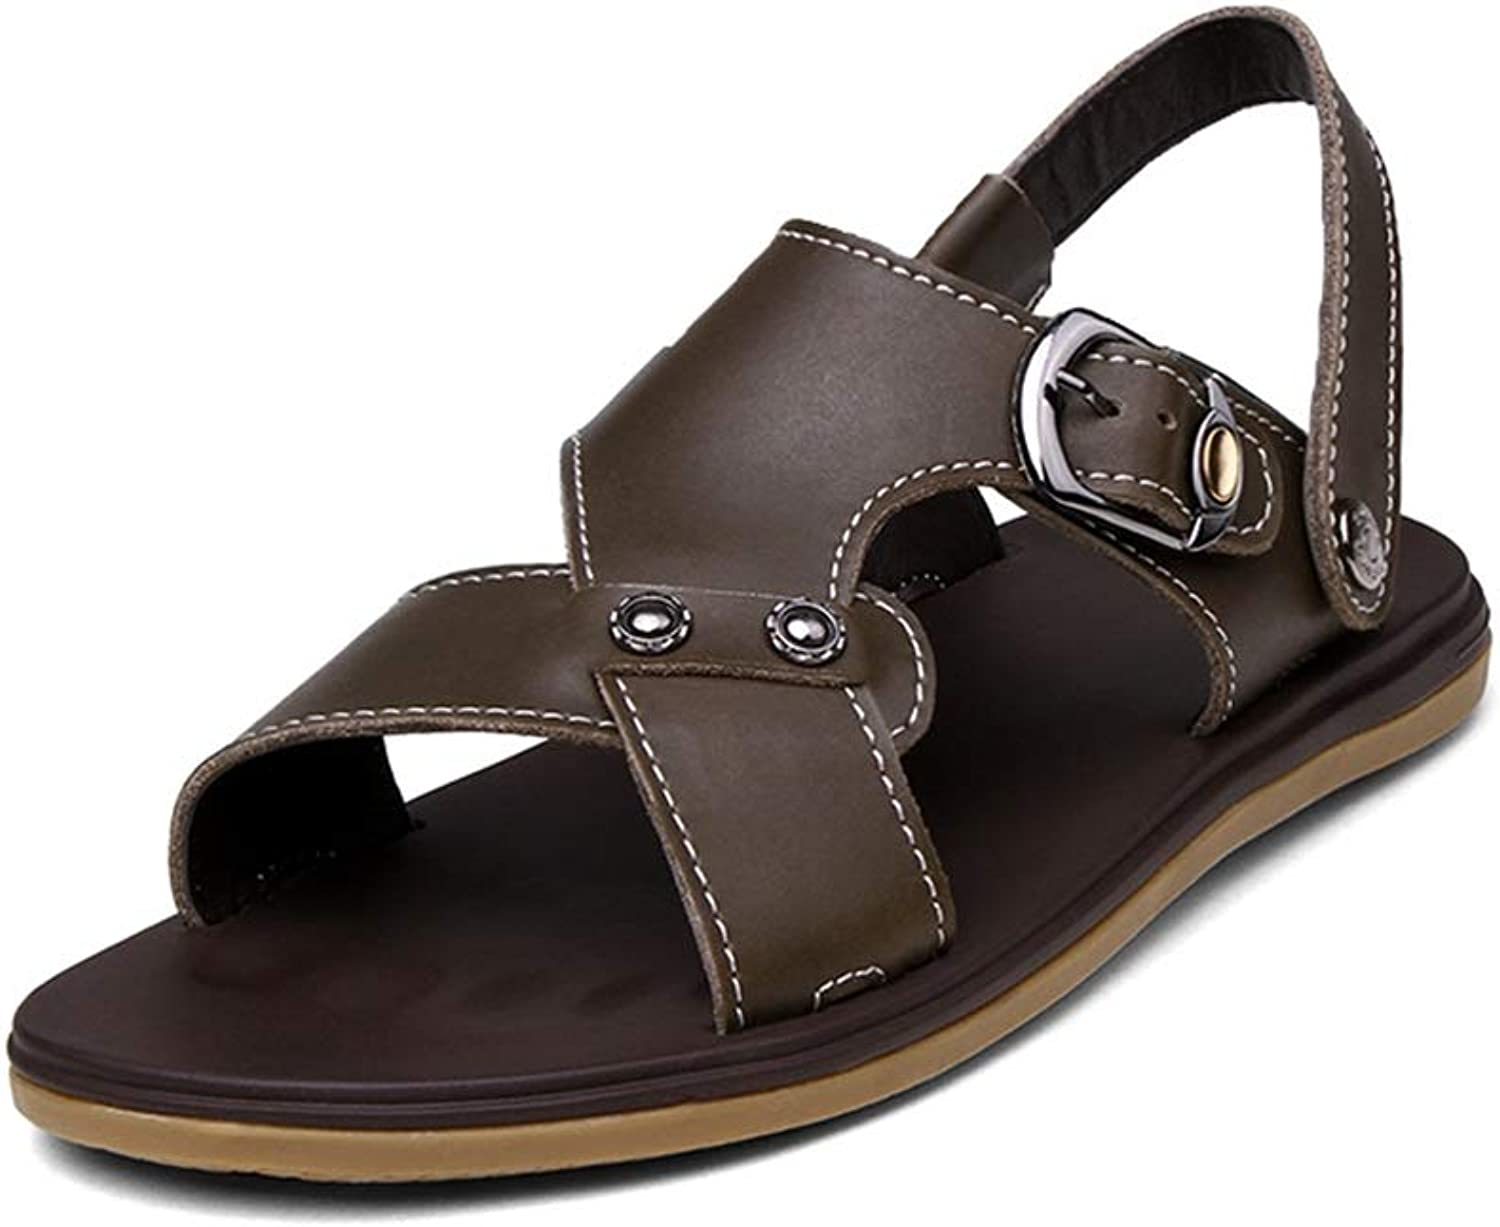 GLSHI Men Beach shoes Summer Slipper Slip On Style Genuine Leather Comfortable Sports Travel Adjustable Buckle Sandals New